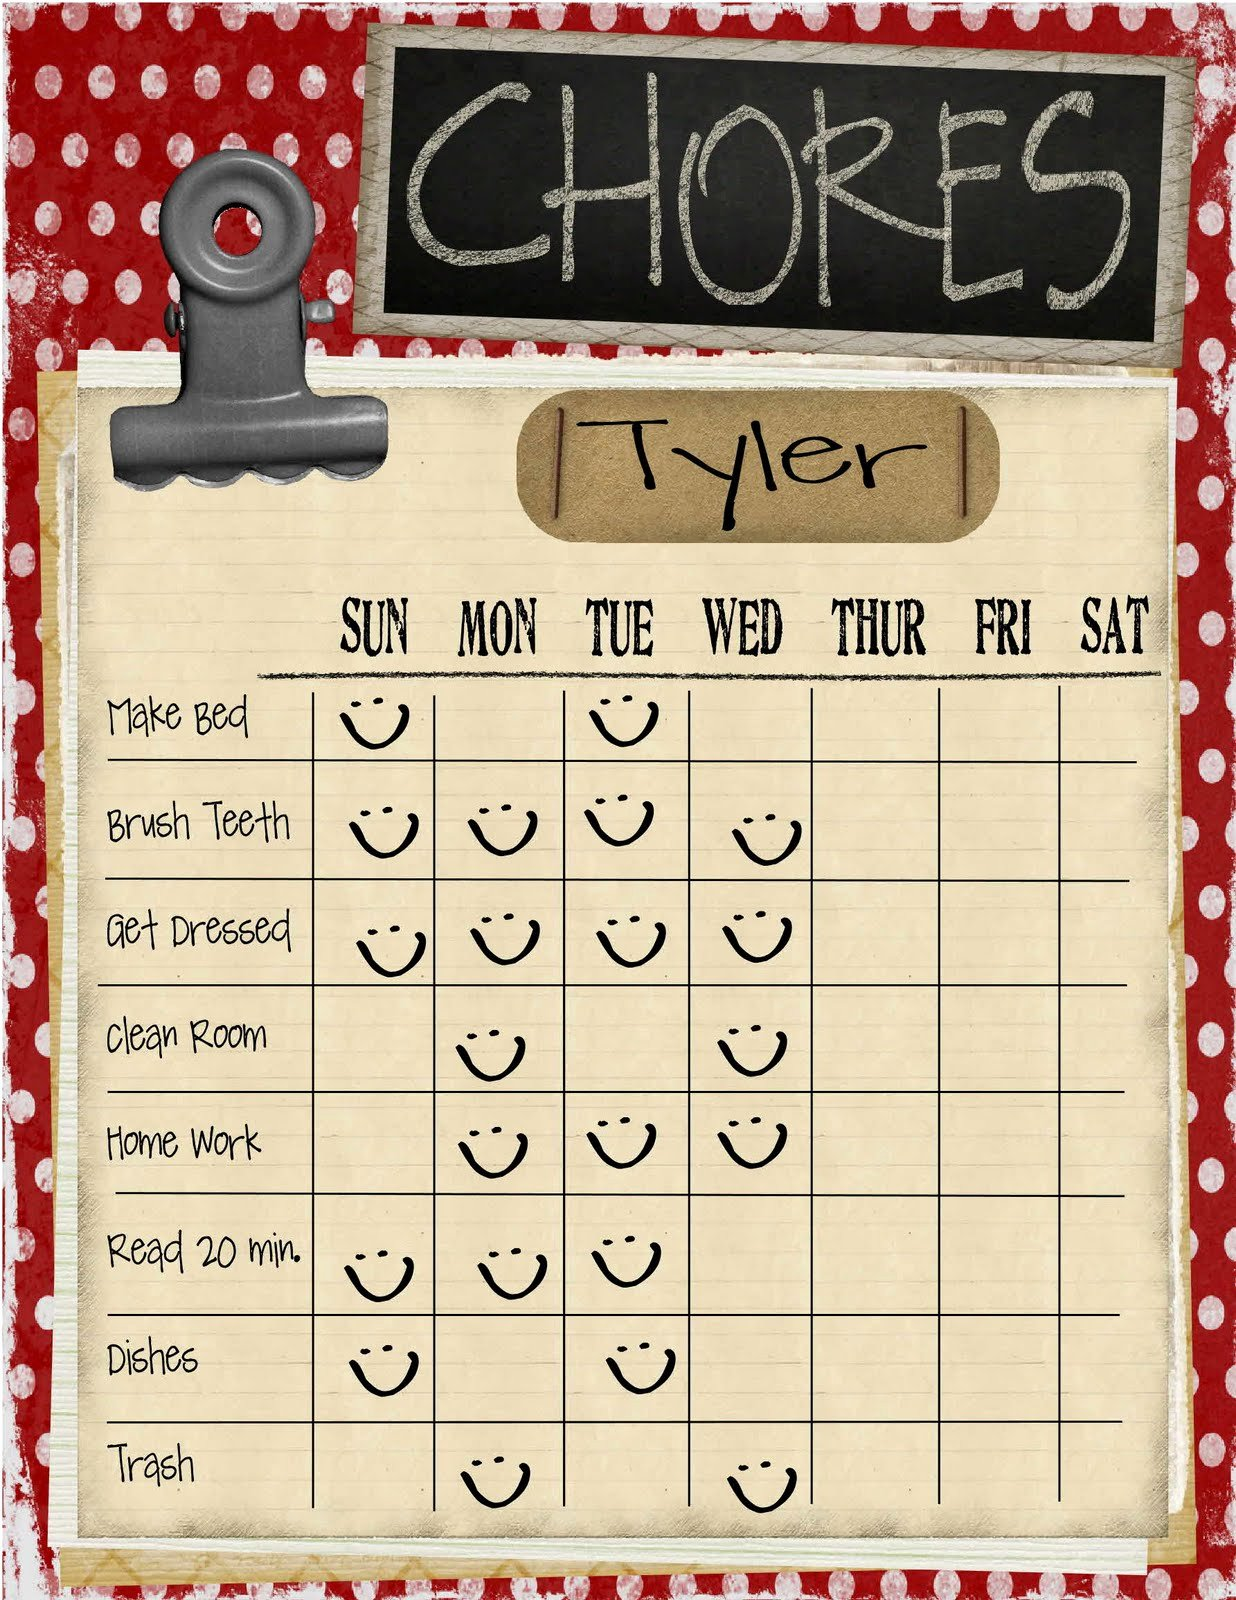 A List Of Chores Awesome May 2013